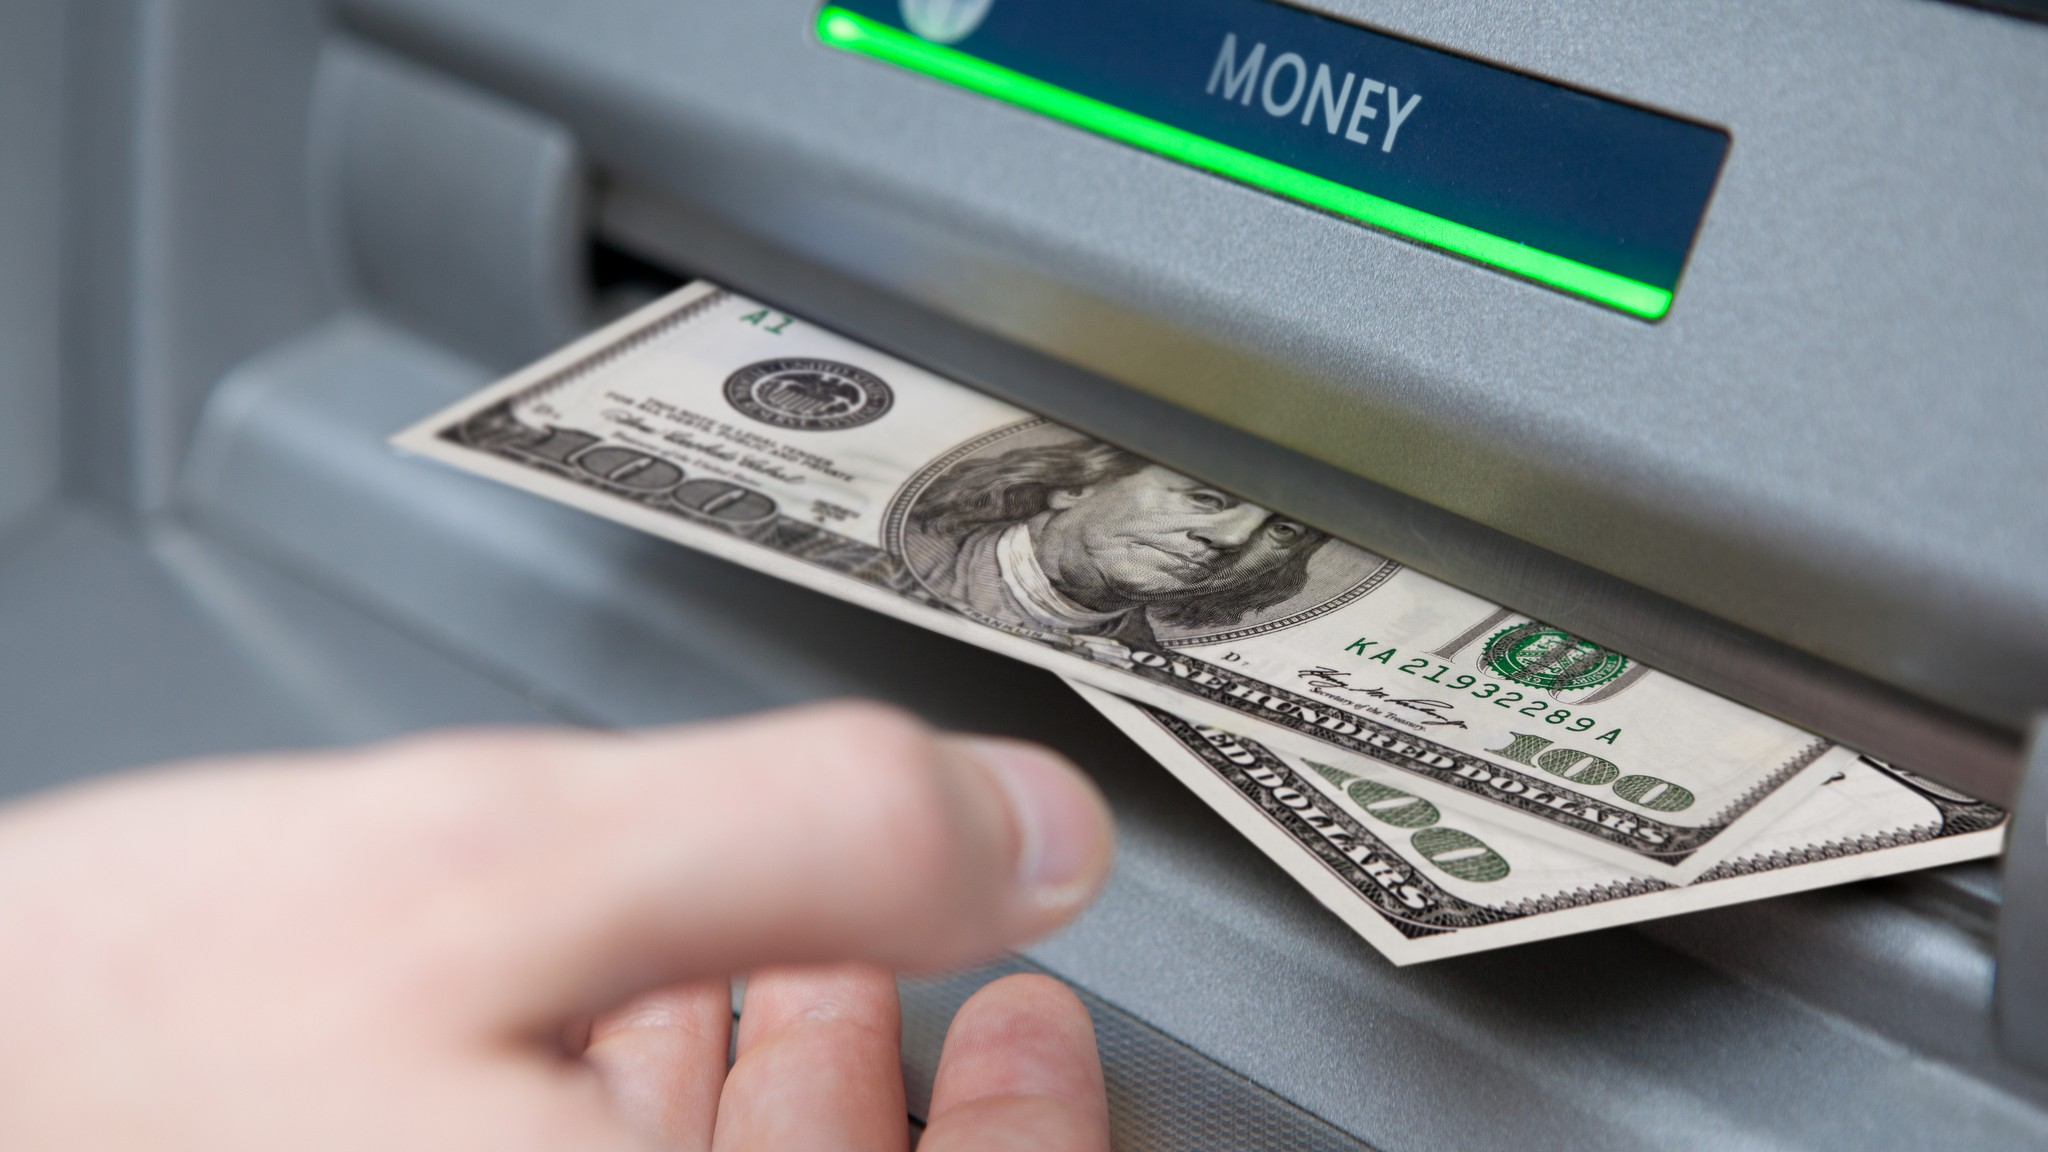 Bitcoin ATMs Are Popular With the Unbanked, But the Regulatory Future Is Unclear